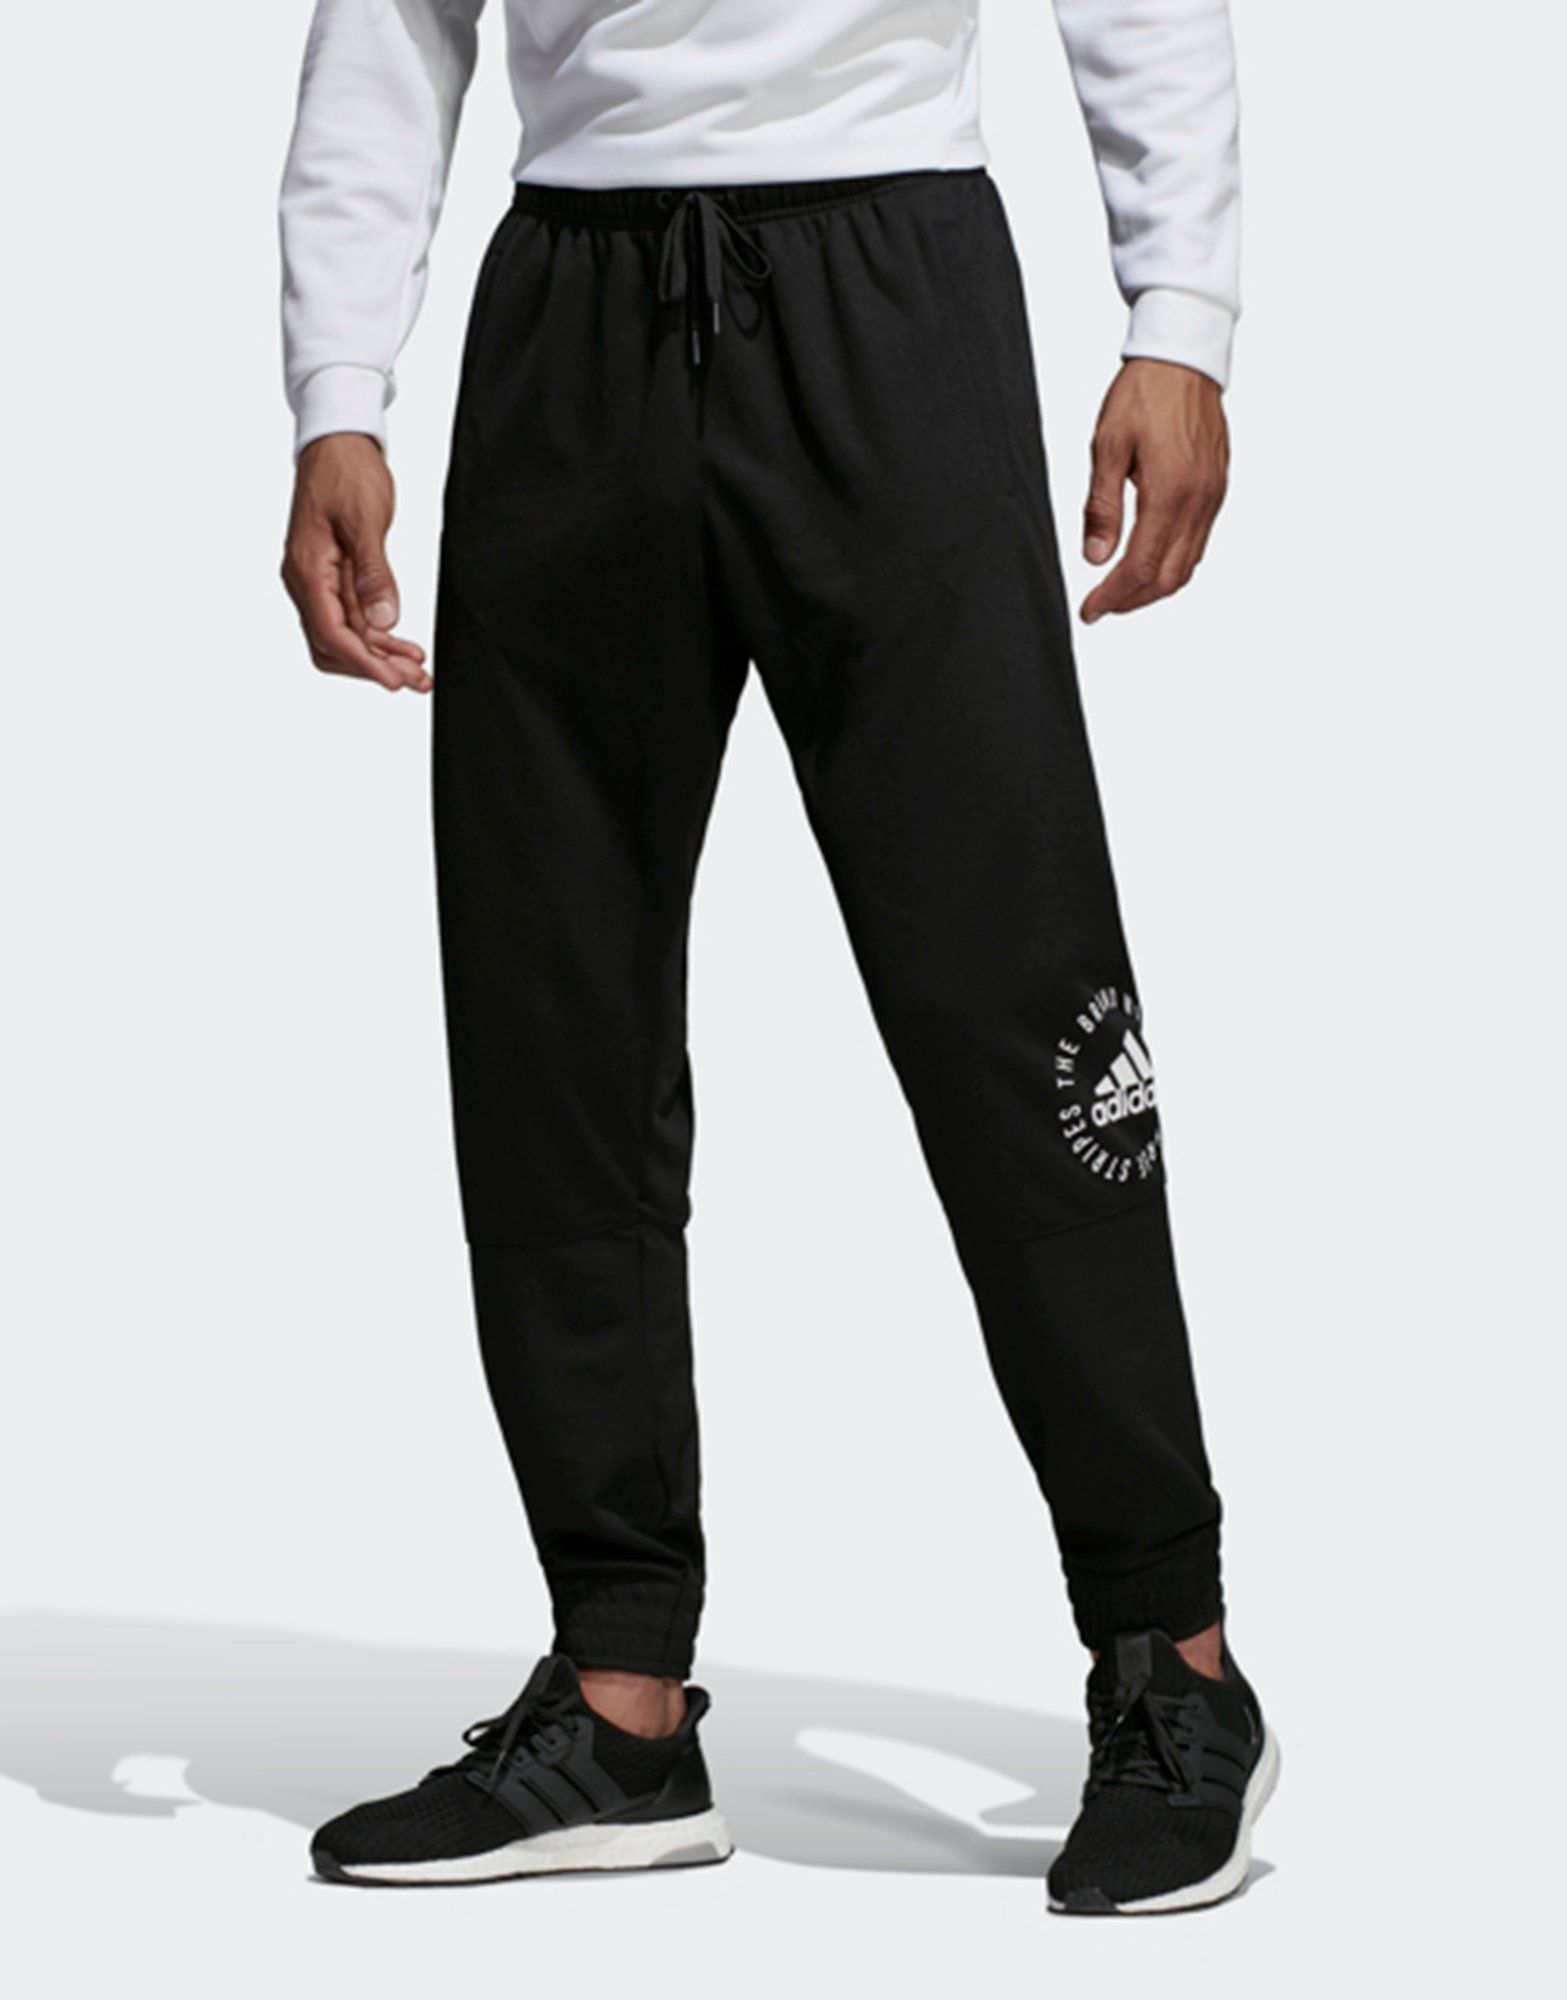 Adidas Originals Superstar Track Pants Junior from Jd Sports on 21 Buttons